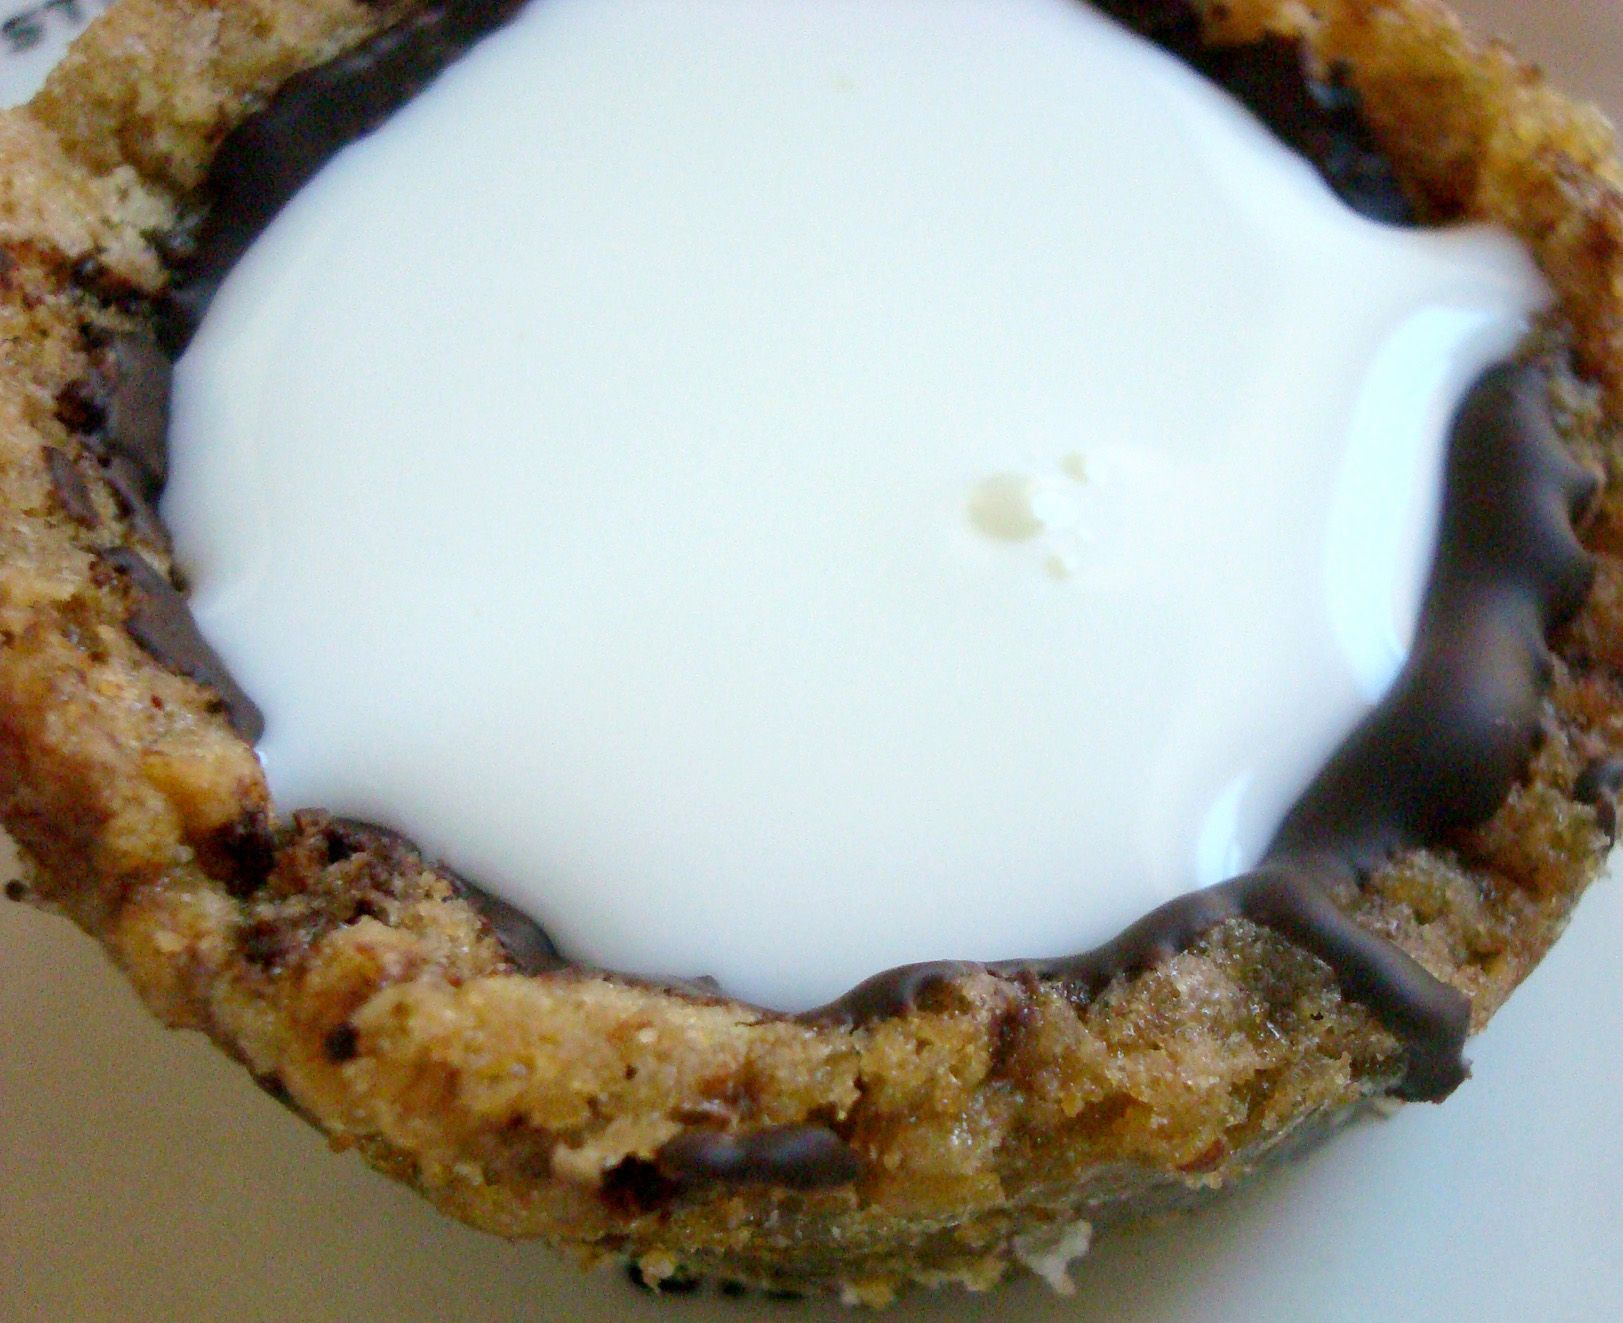 Cookie cup lined with chocolate, filled with milk or pudding